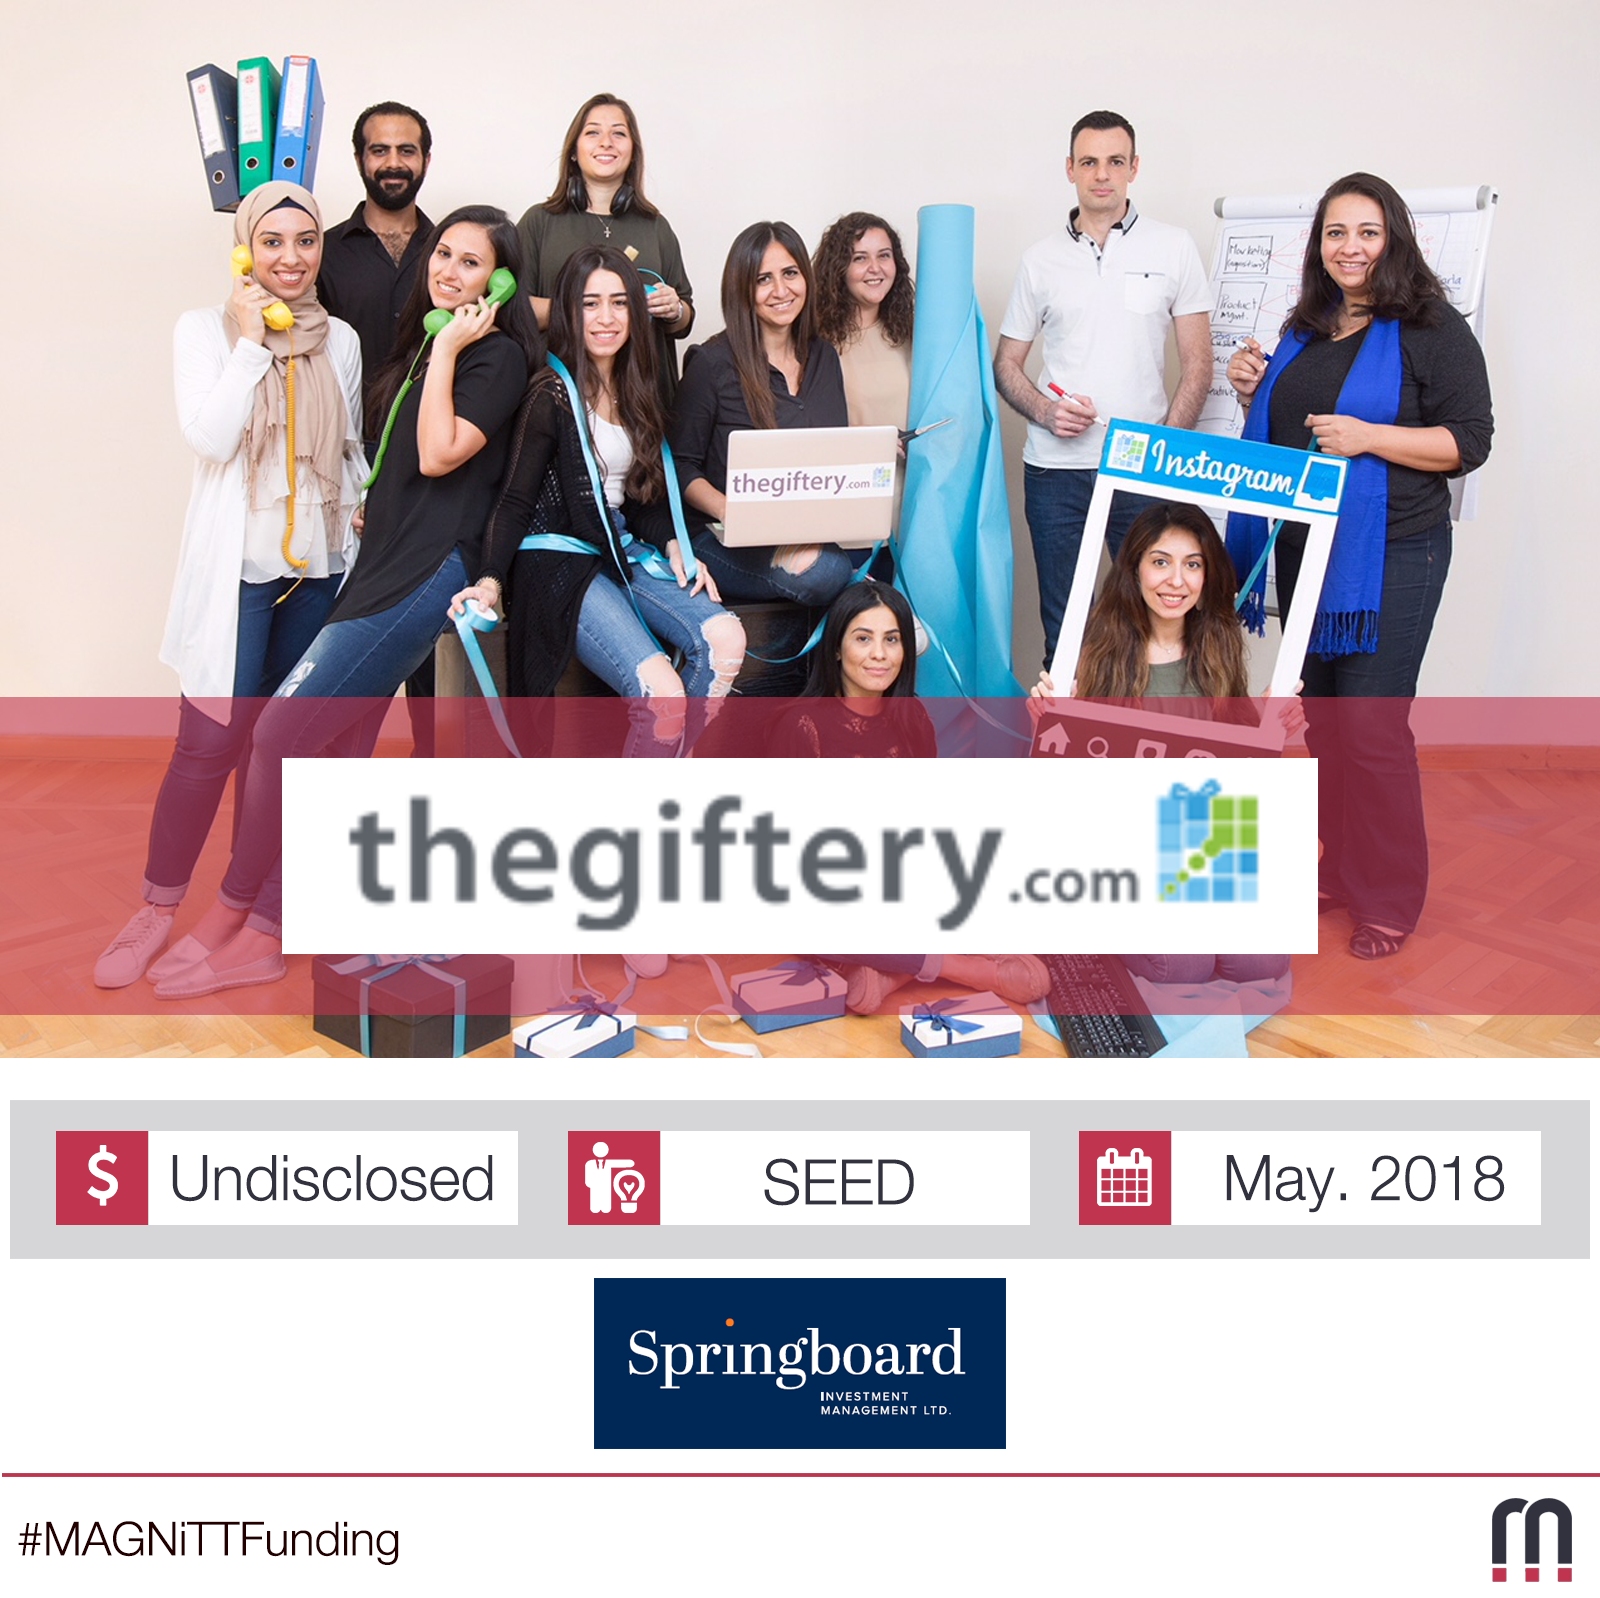 Egypt-based The Giftery successfully closes a SEED investment round